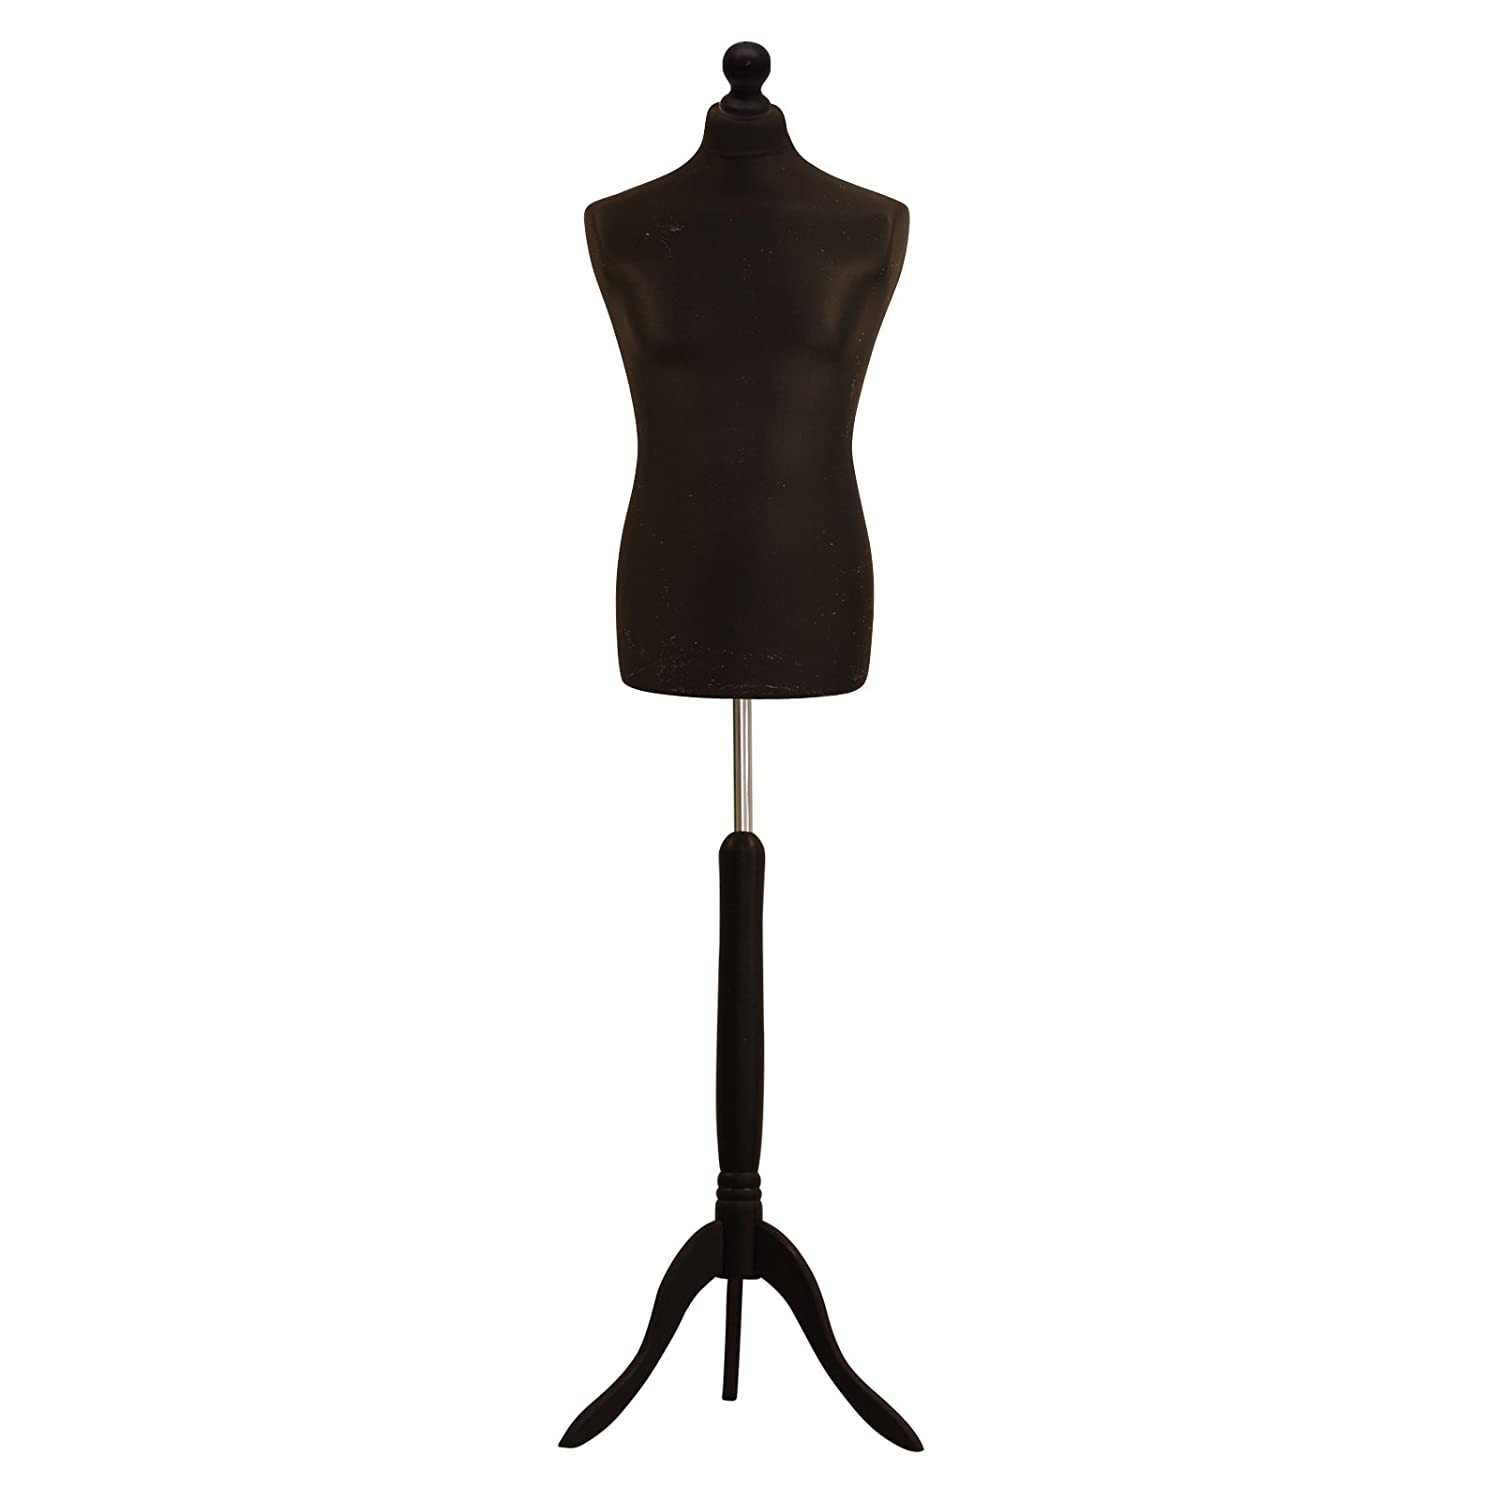 Black Male Tailors Dummy Mannequin With A Black Wood Stand ANKMARKETING LTD